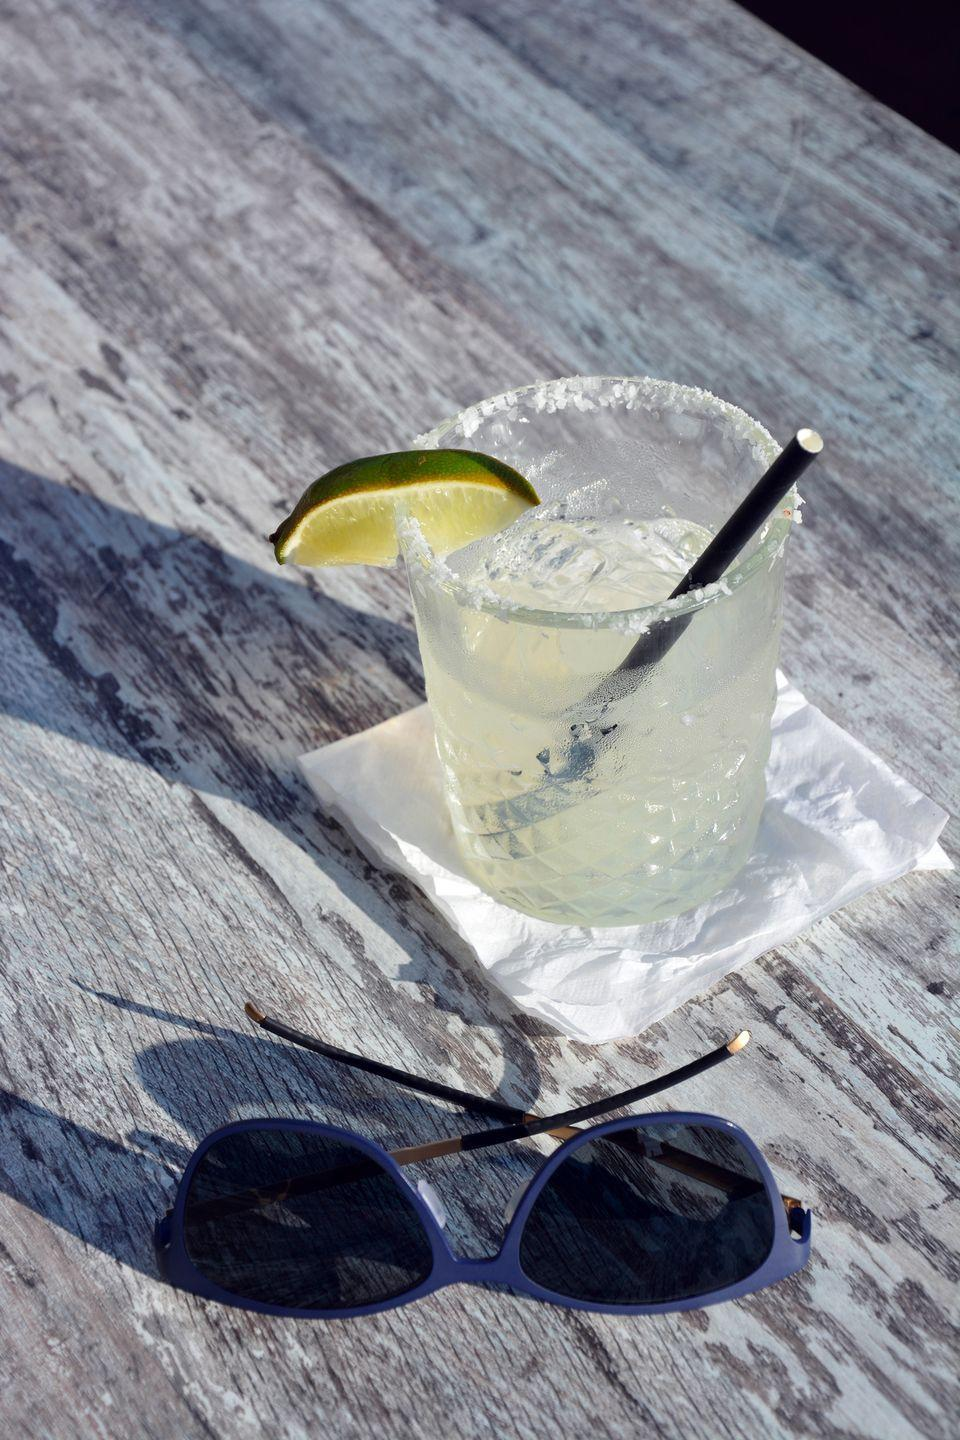 "<p>A complex combination of sweet, salty and sour notes makes for a bold flavour, reflected by the personality of a <a href=""https://www.delish.com/uk/cocktails-drinks/a30893337/best-classic-margarita-recipe/"" rel=""nofollow noopener"" target=""_blank"" data-ylk=""slk:Margarita"" class=""link rapid-noclick-resp"">Margarita</a> drinker. If you choose this vibrant cocktail, you're typically very energetic, outgoing and comfortable being the centre of attention. You're also a thrill-seeker who lives life at a fast pace; never slowing down for fear of missing out.</p>"